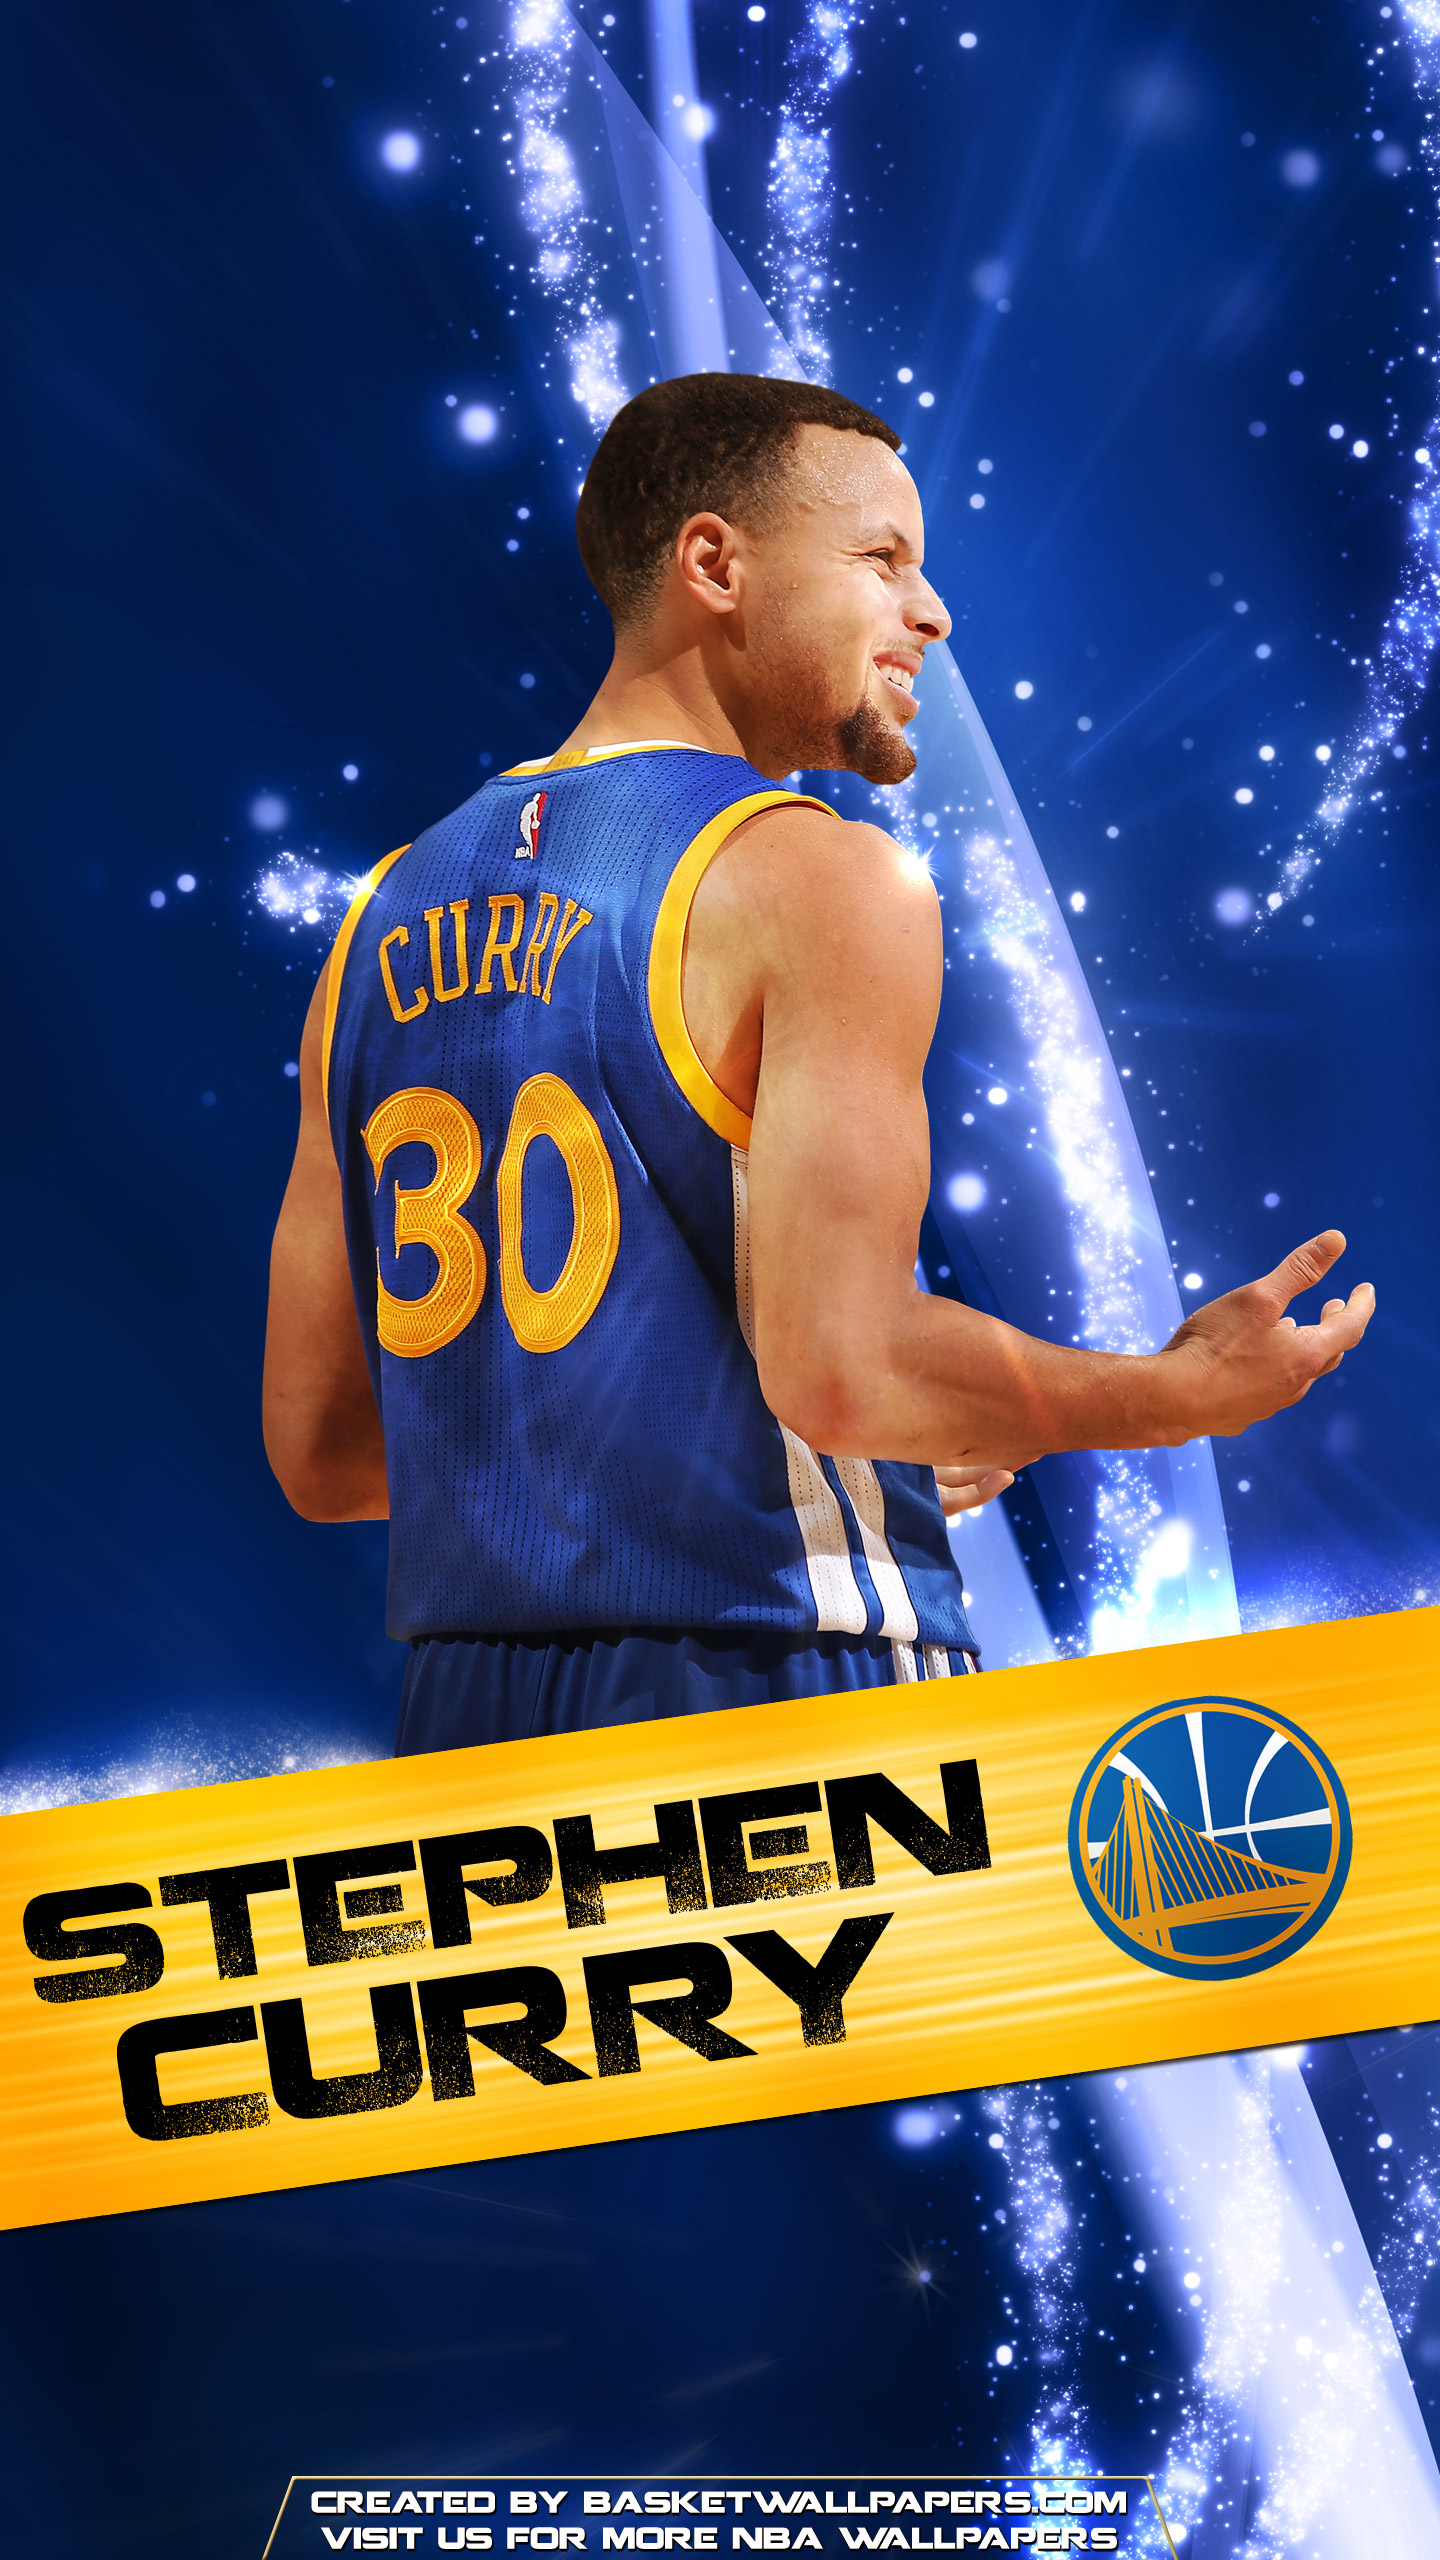 Stephen Curry Wallpaper for Iphone 2020 Live Wallpaper HD 1440x2560